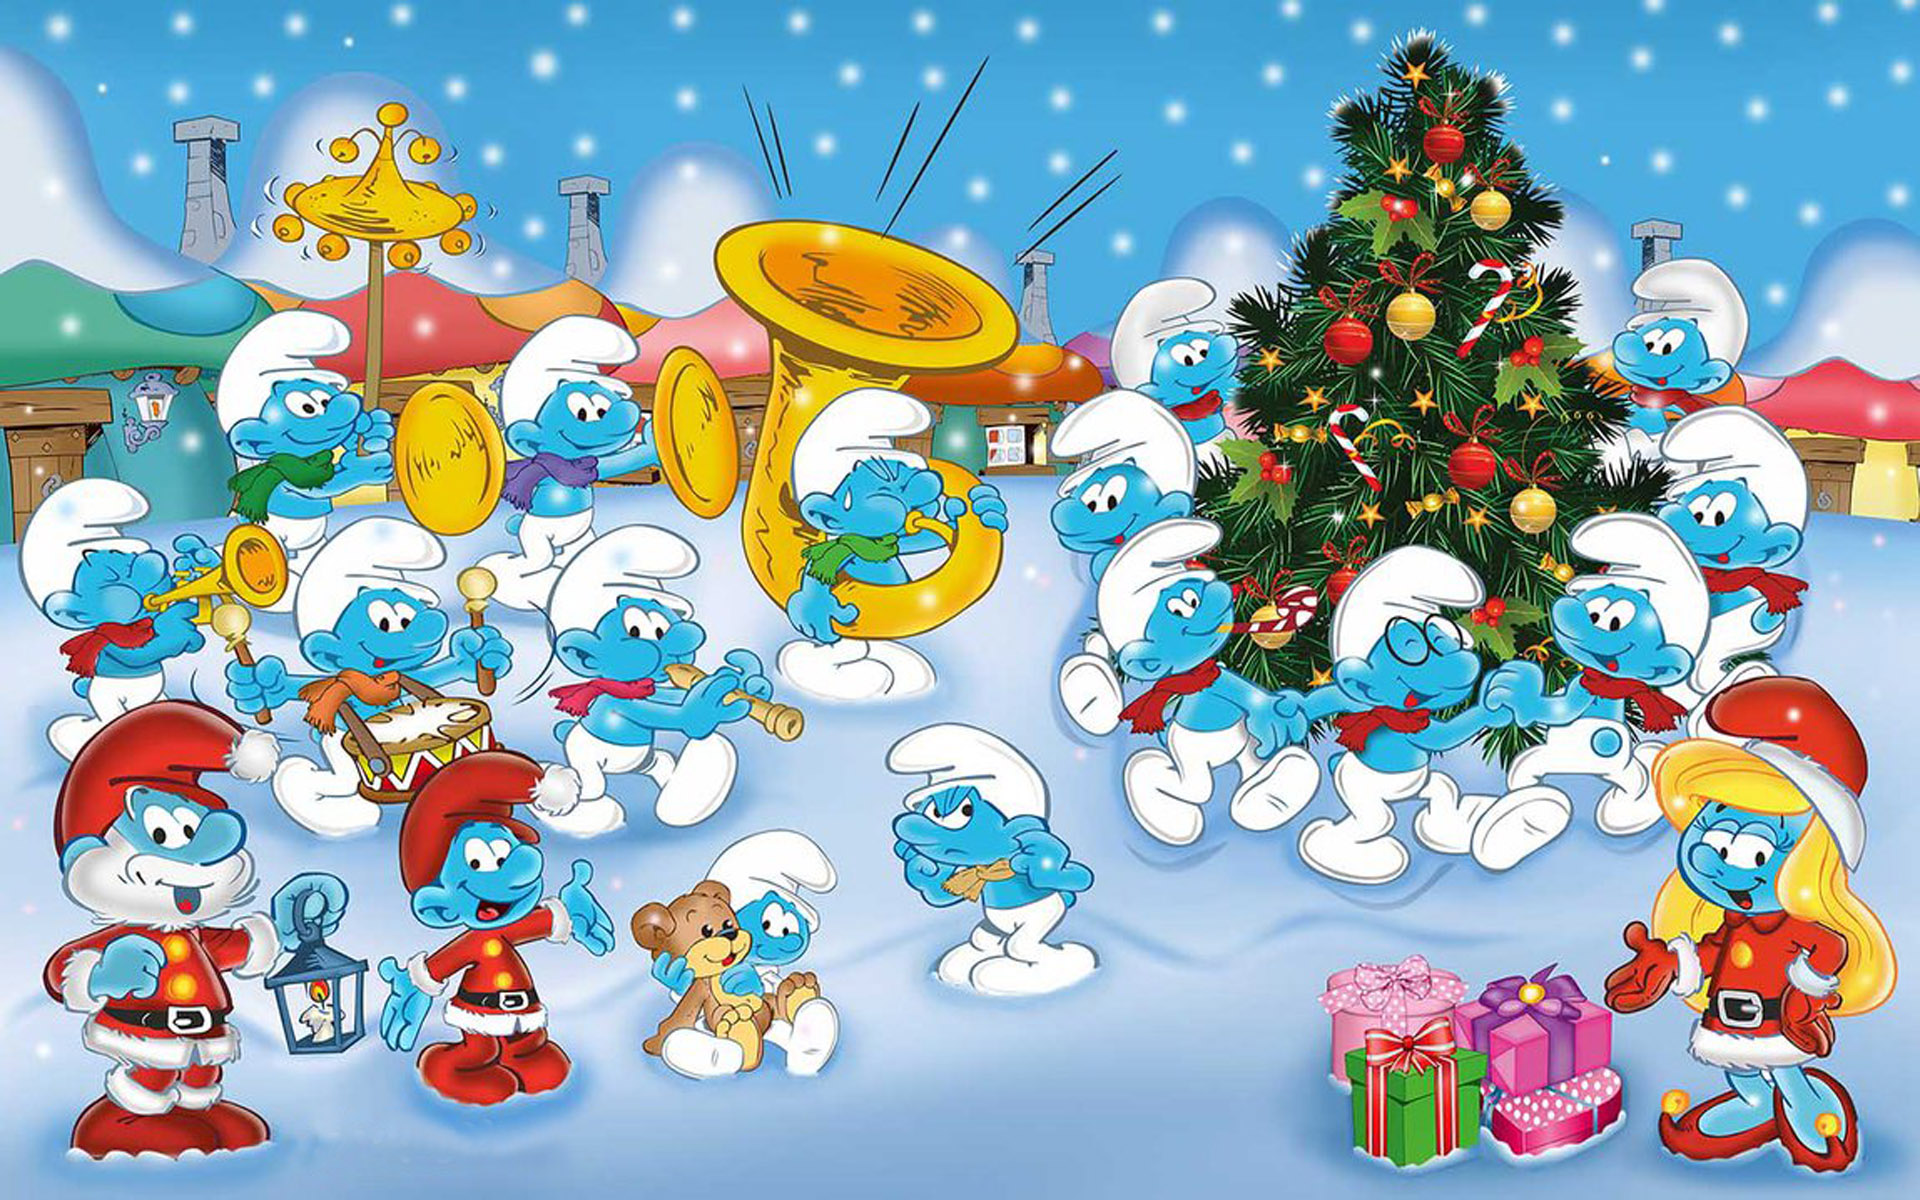 3d Smurfette Wallpapers The Smurfs Music Orchestra Cartoons Merry Christmas And